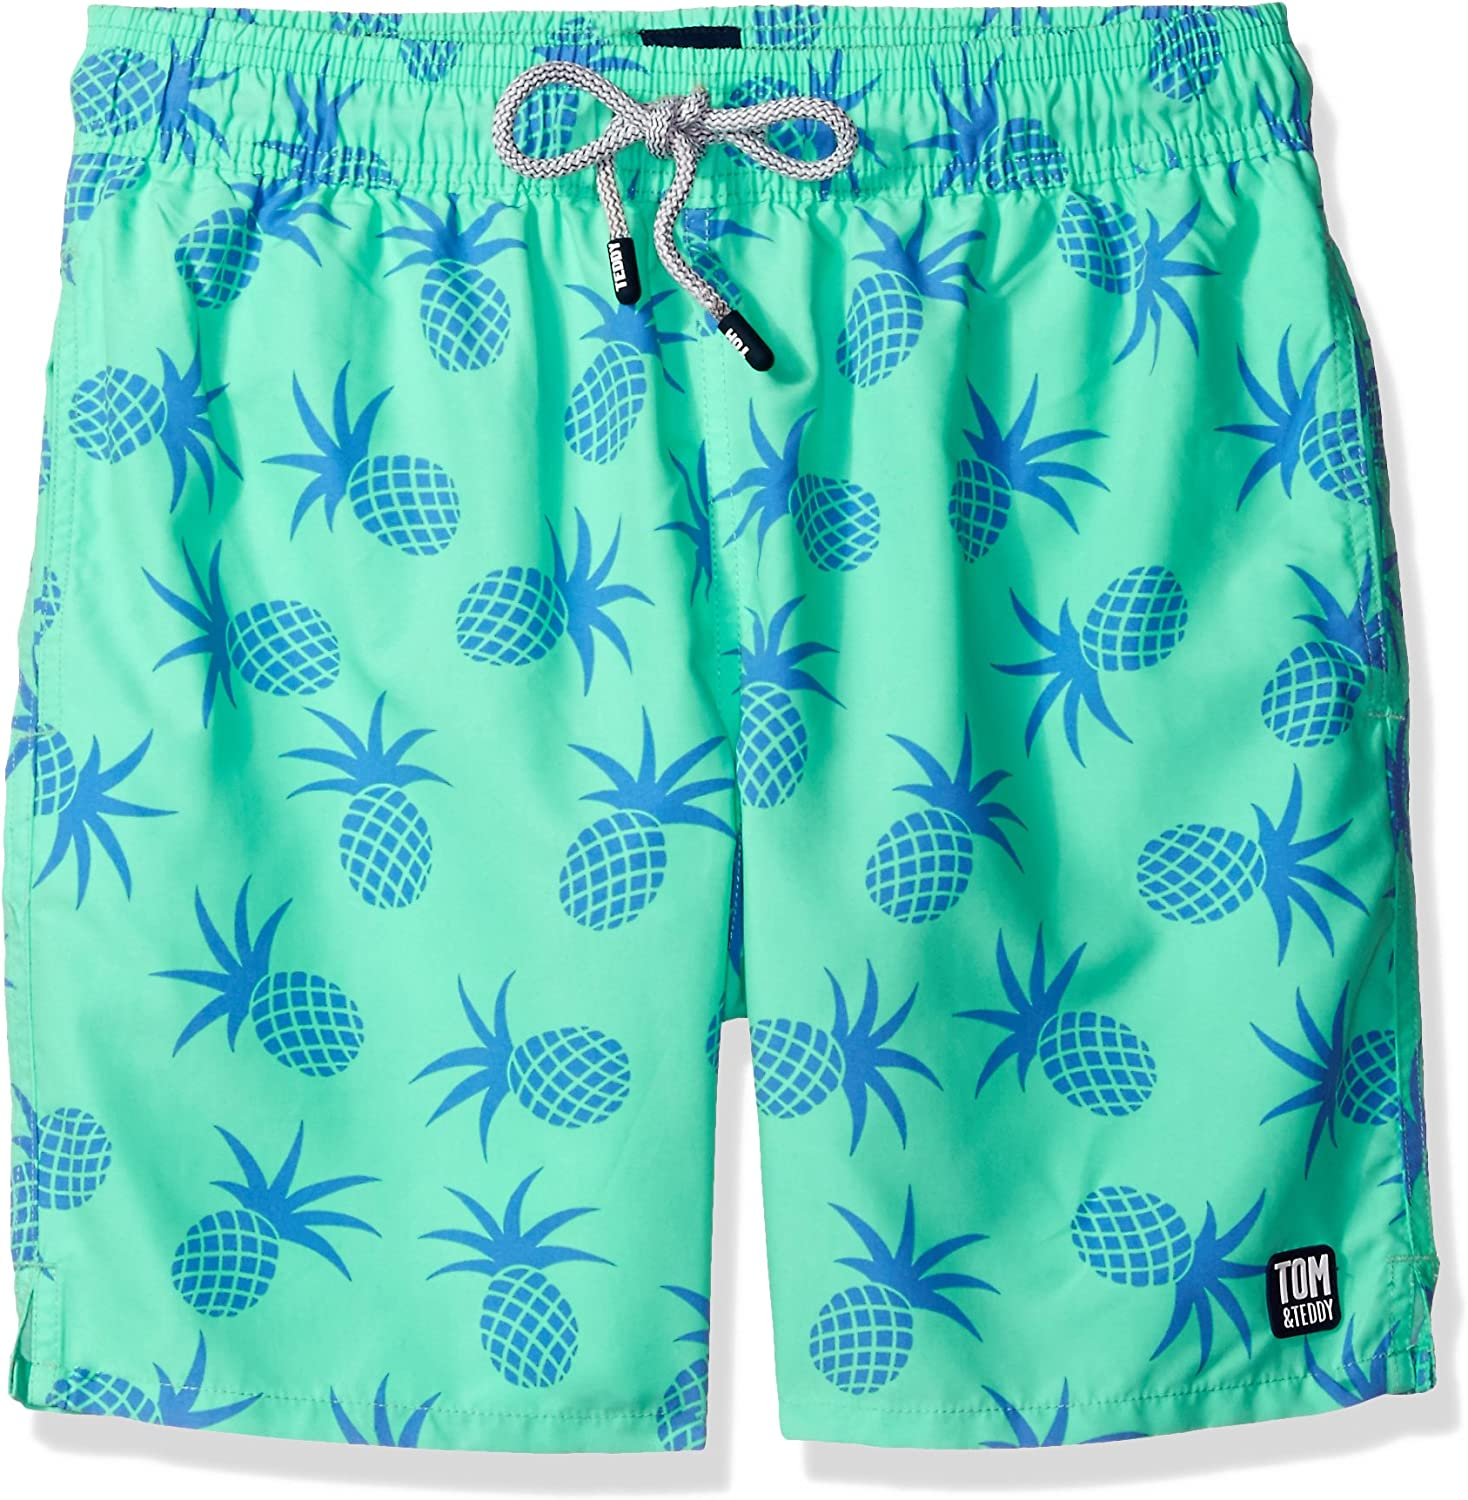 Tom & Teddy Men's Pineapple Swim Trunks